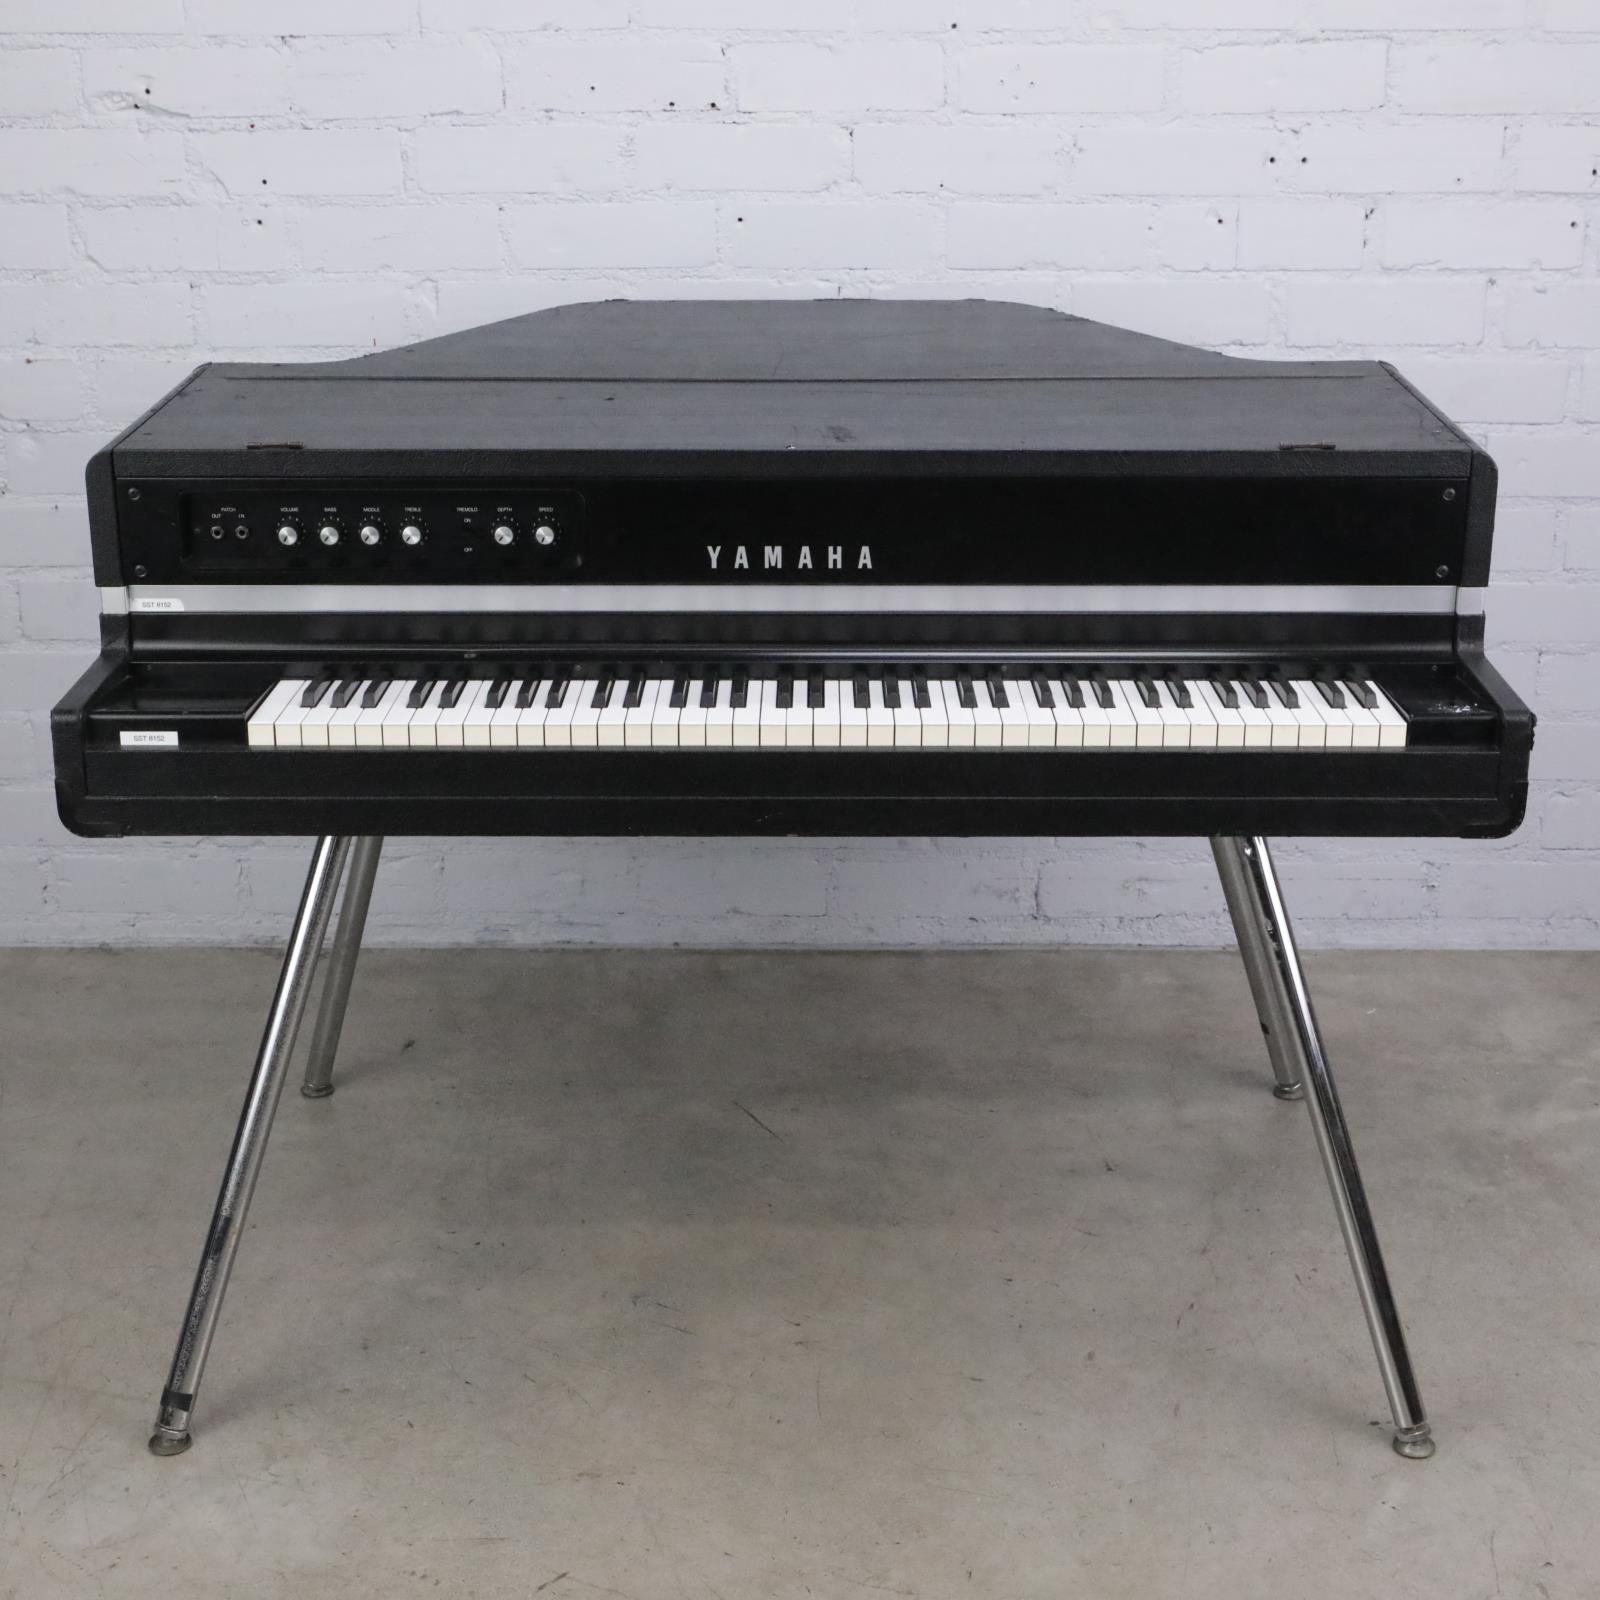 Vintage Yamaha CP-70B Acoustic-Electric Grand Piano w/ Calzone Road Cases #42791